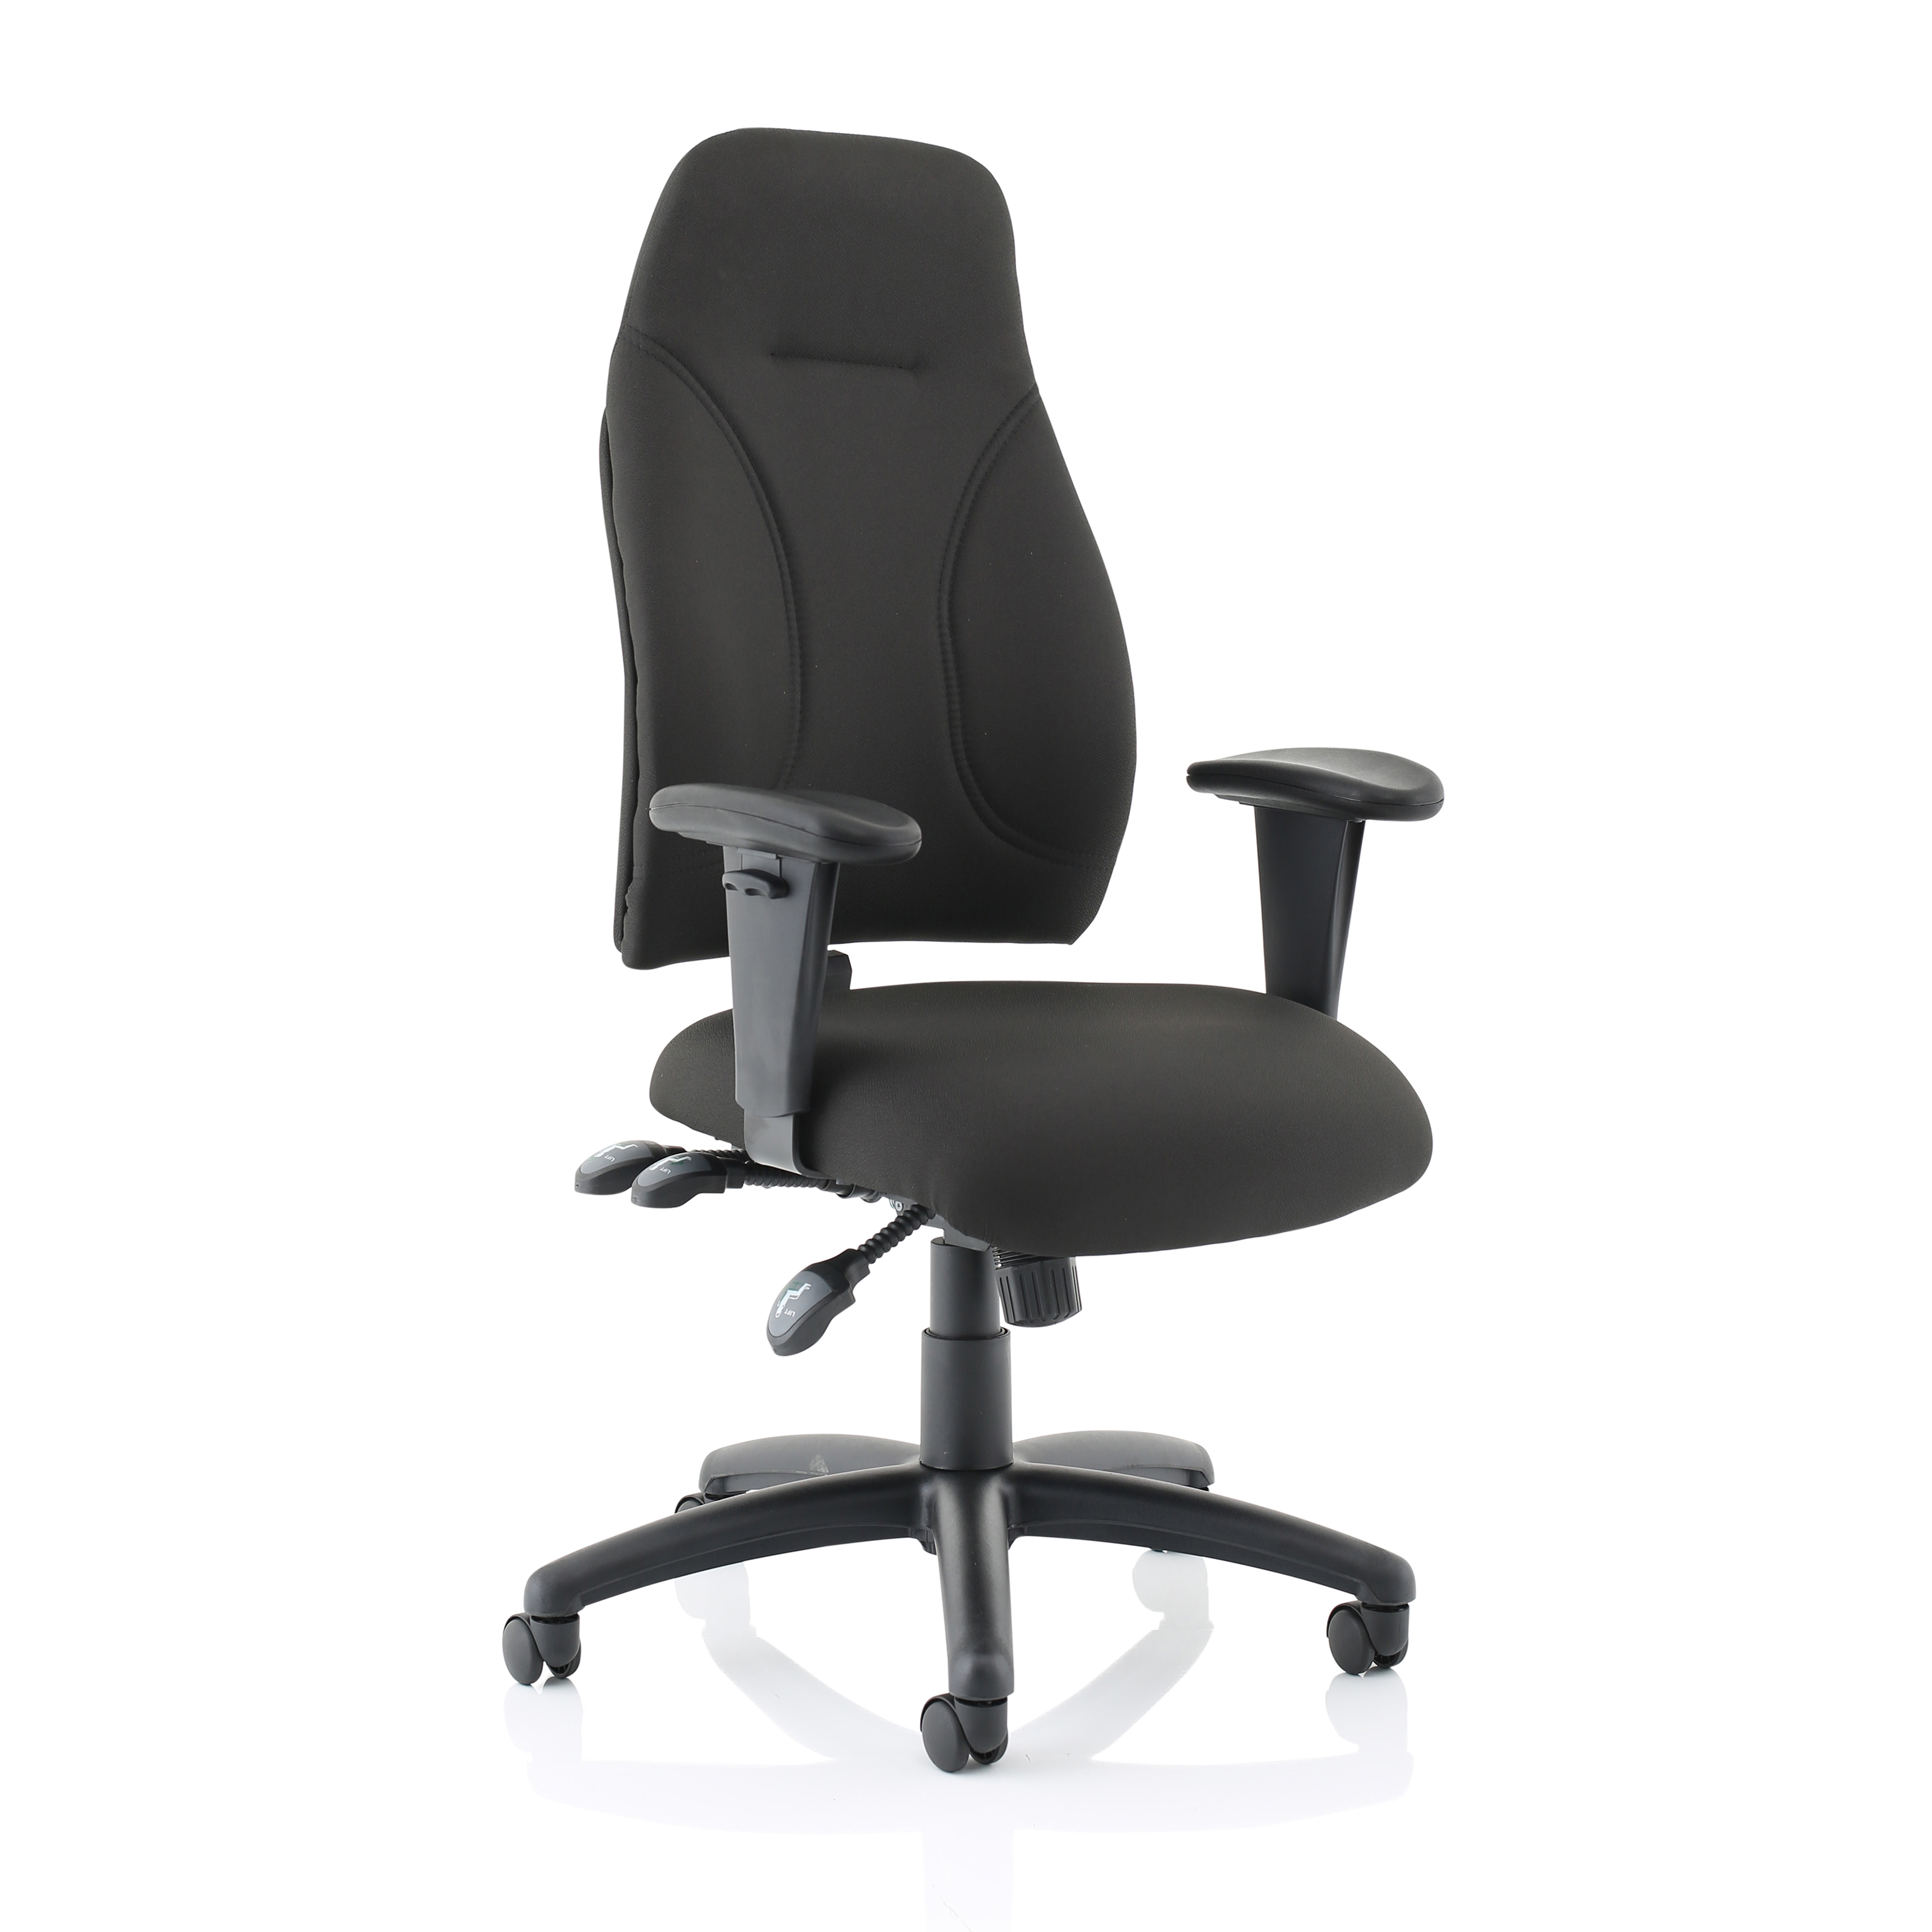 Task seating Trexus Posture High Back Asynchronous Chair Black 500x500x420-530mm Ref SP413845